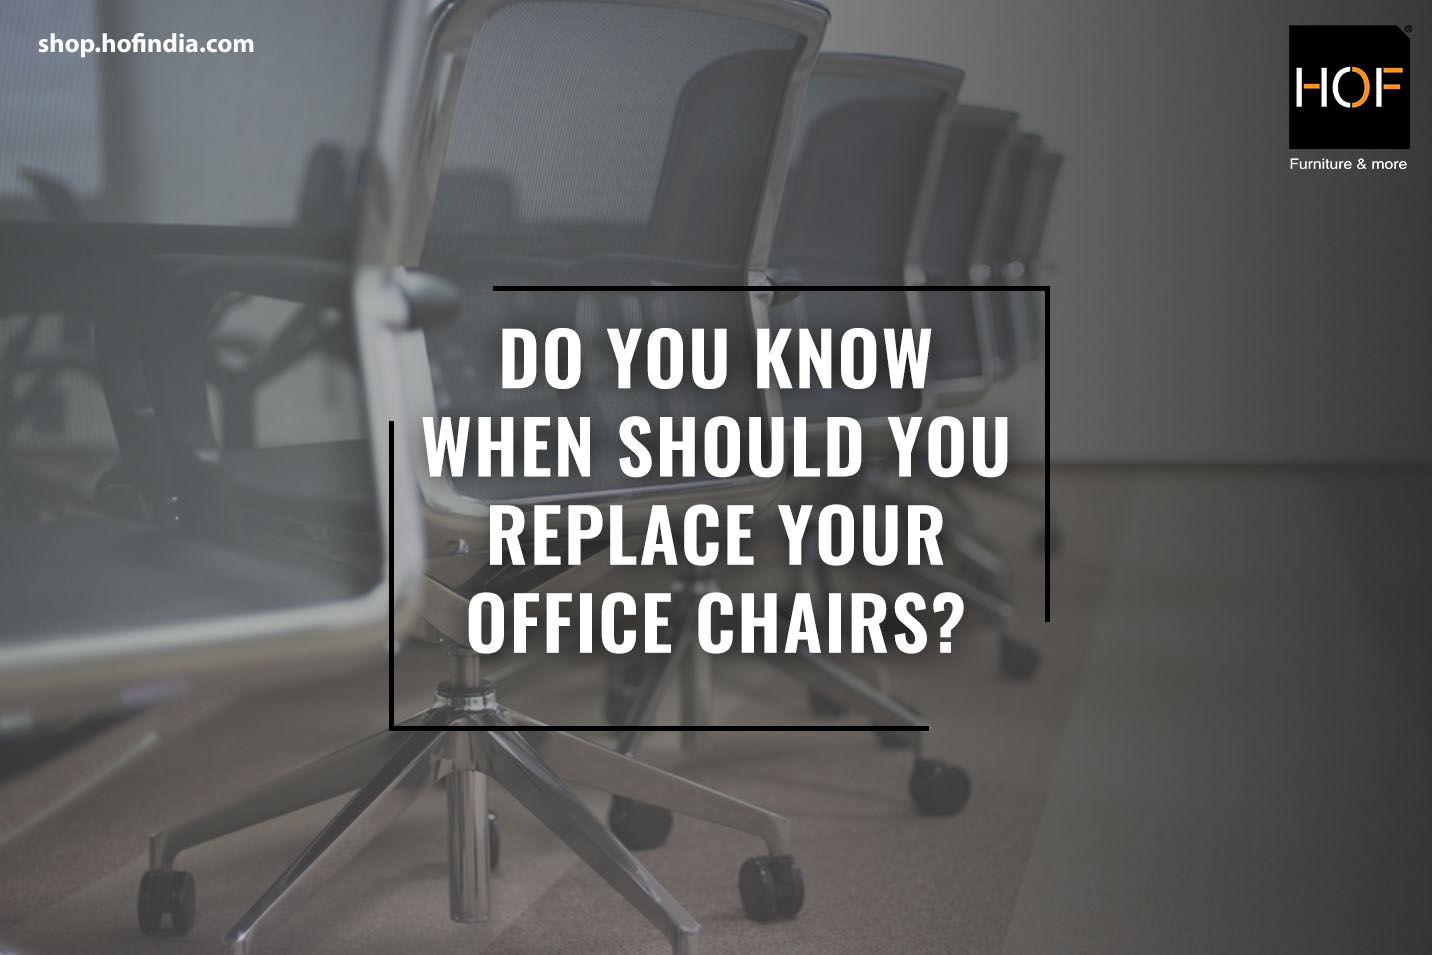 buy office chairs from HOF